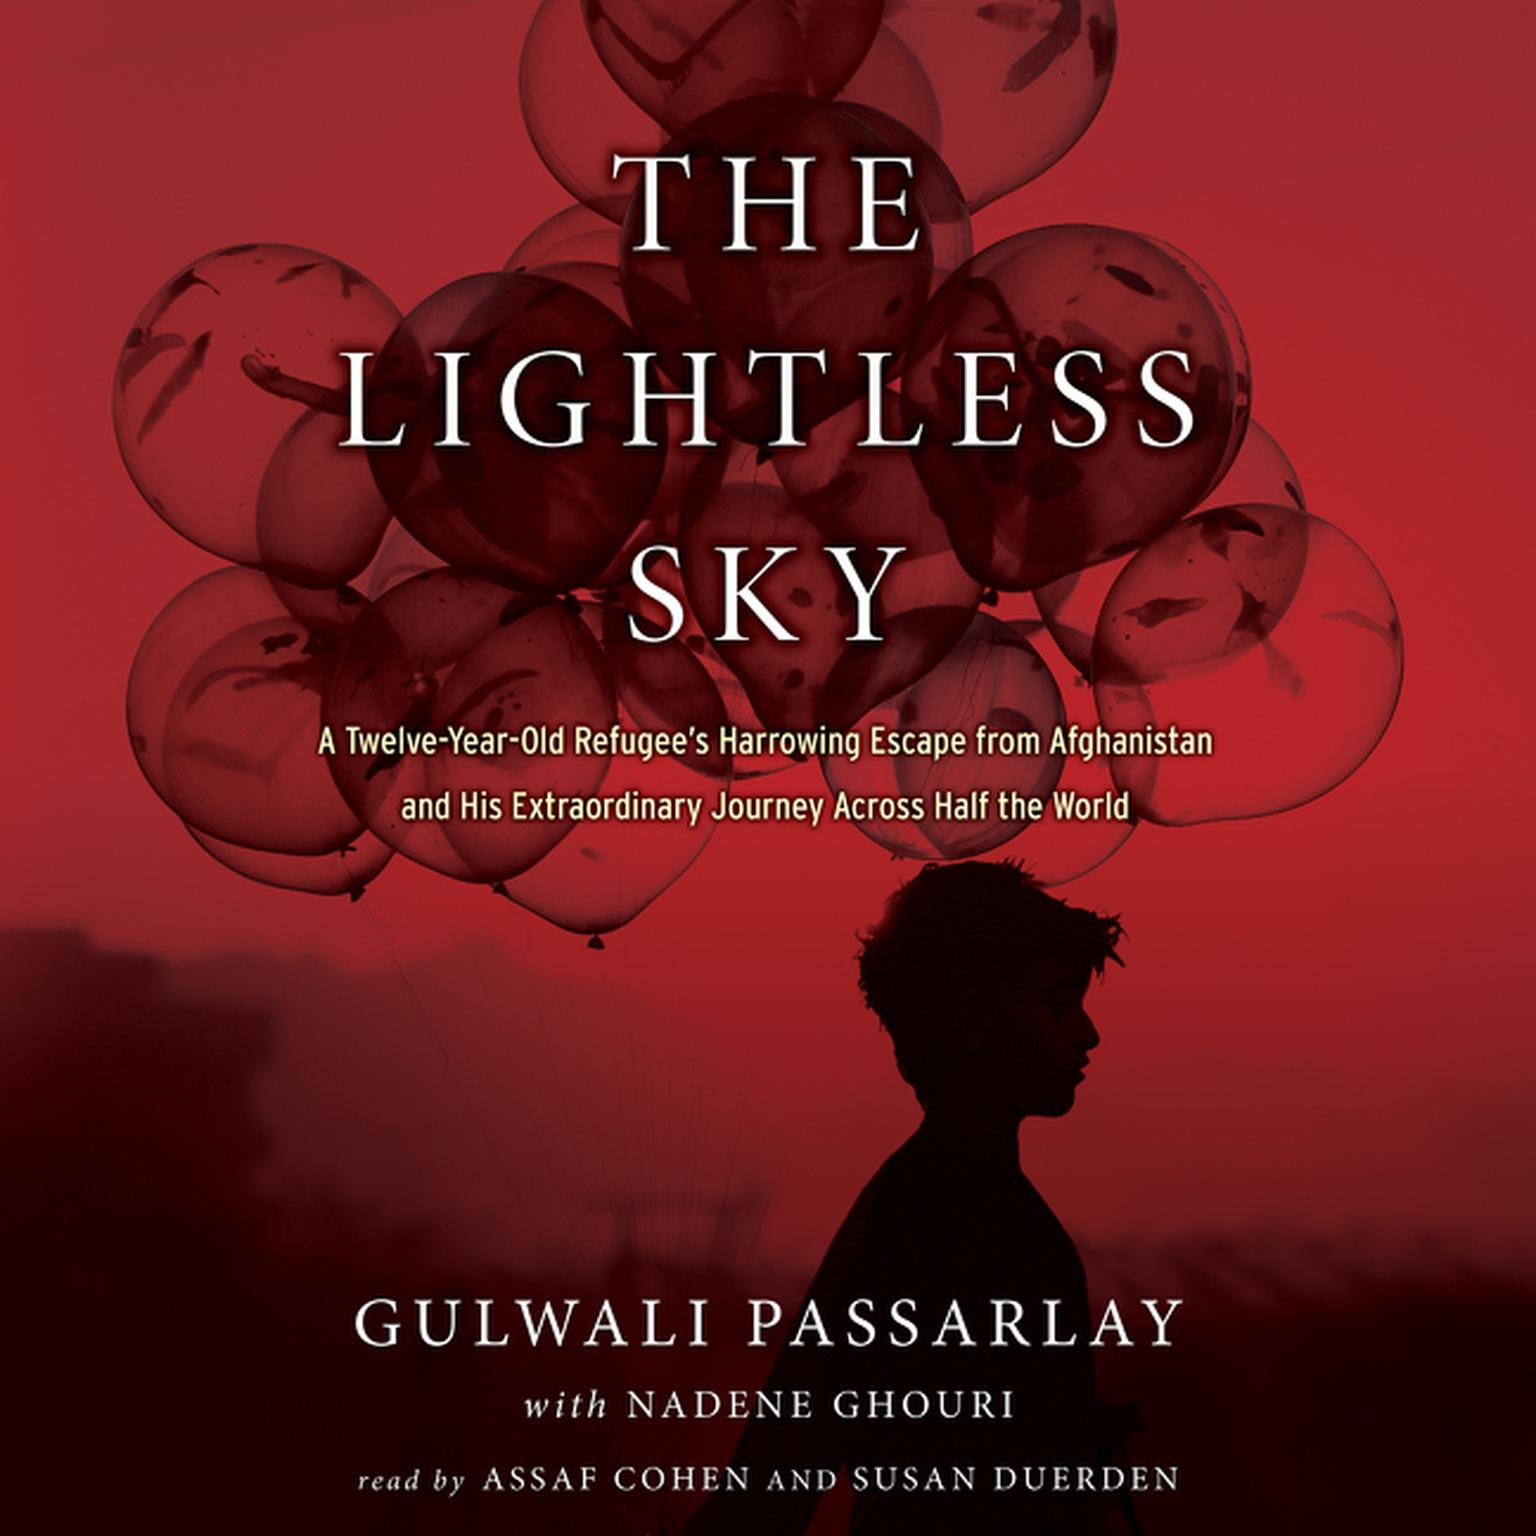 Printable The Lightless Sky: A Twelve-Year-Old Refugee's Harrowing Escape from Afghanistan and His Extraordinary Journey Across Half the World Audiobook Cover Art